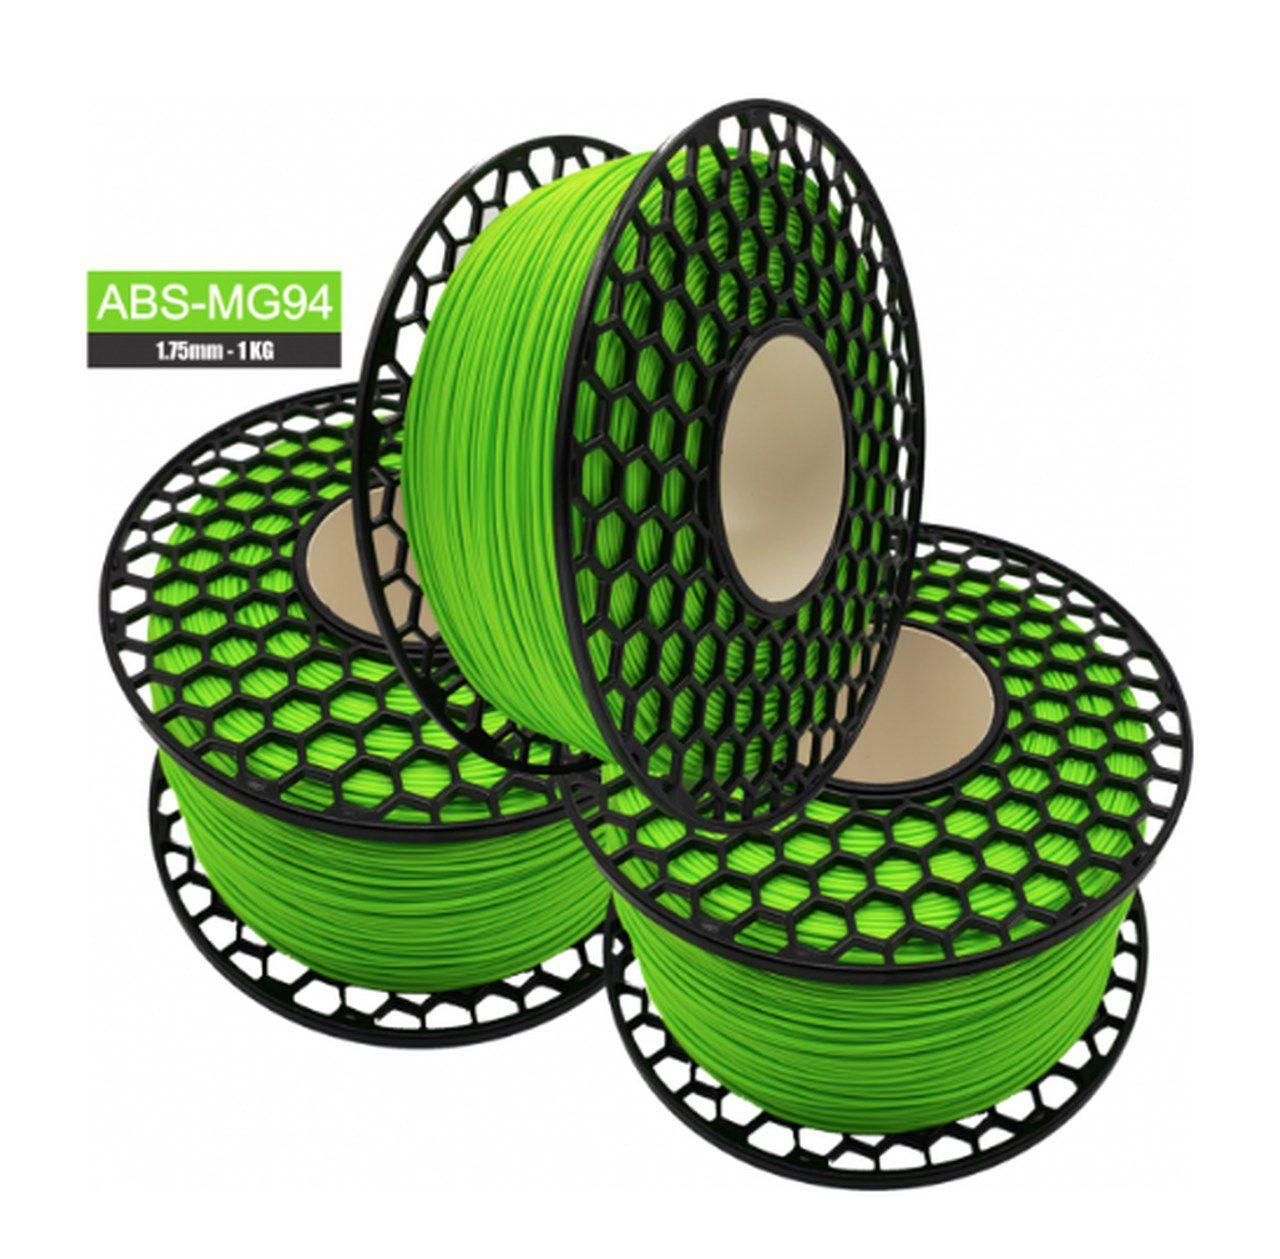 Filamento ABS - Verde Kawasaki - Premium MG94 - National 3D - 1.75mm - 1kg